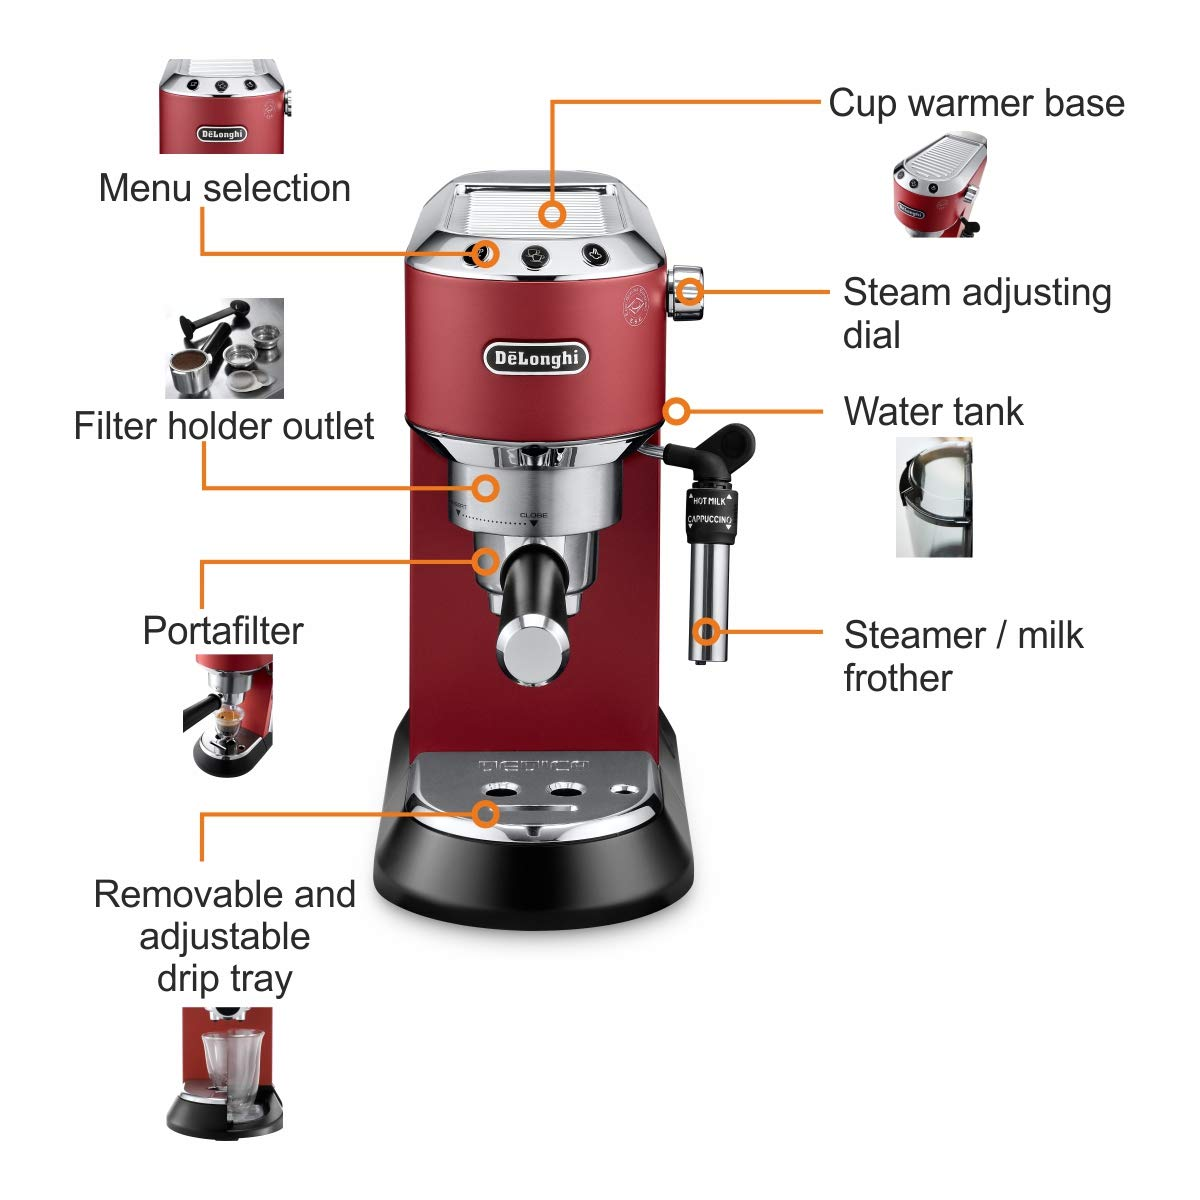 Rent a Delonghi Pump Espresso Coffee Machine - Month Plan